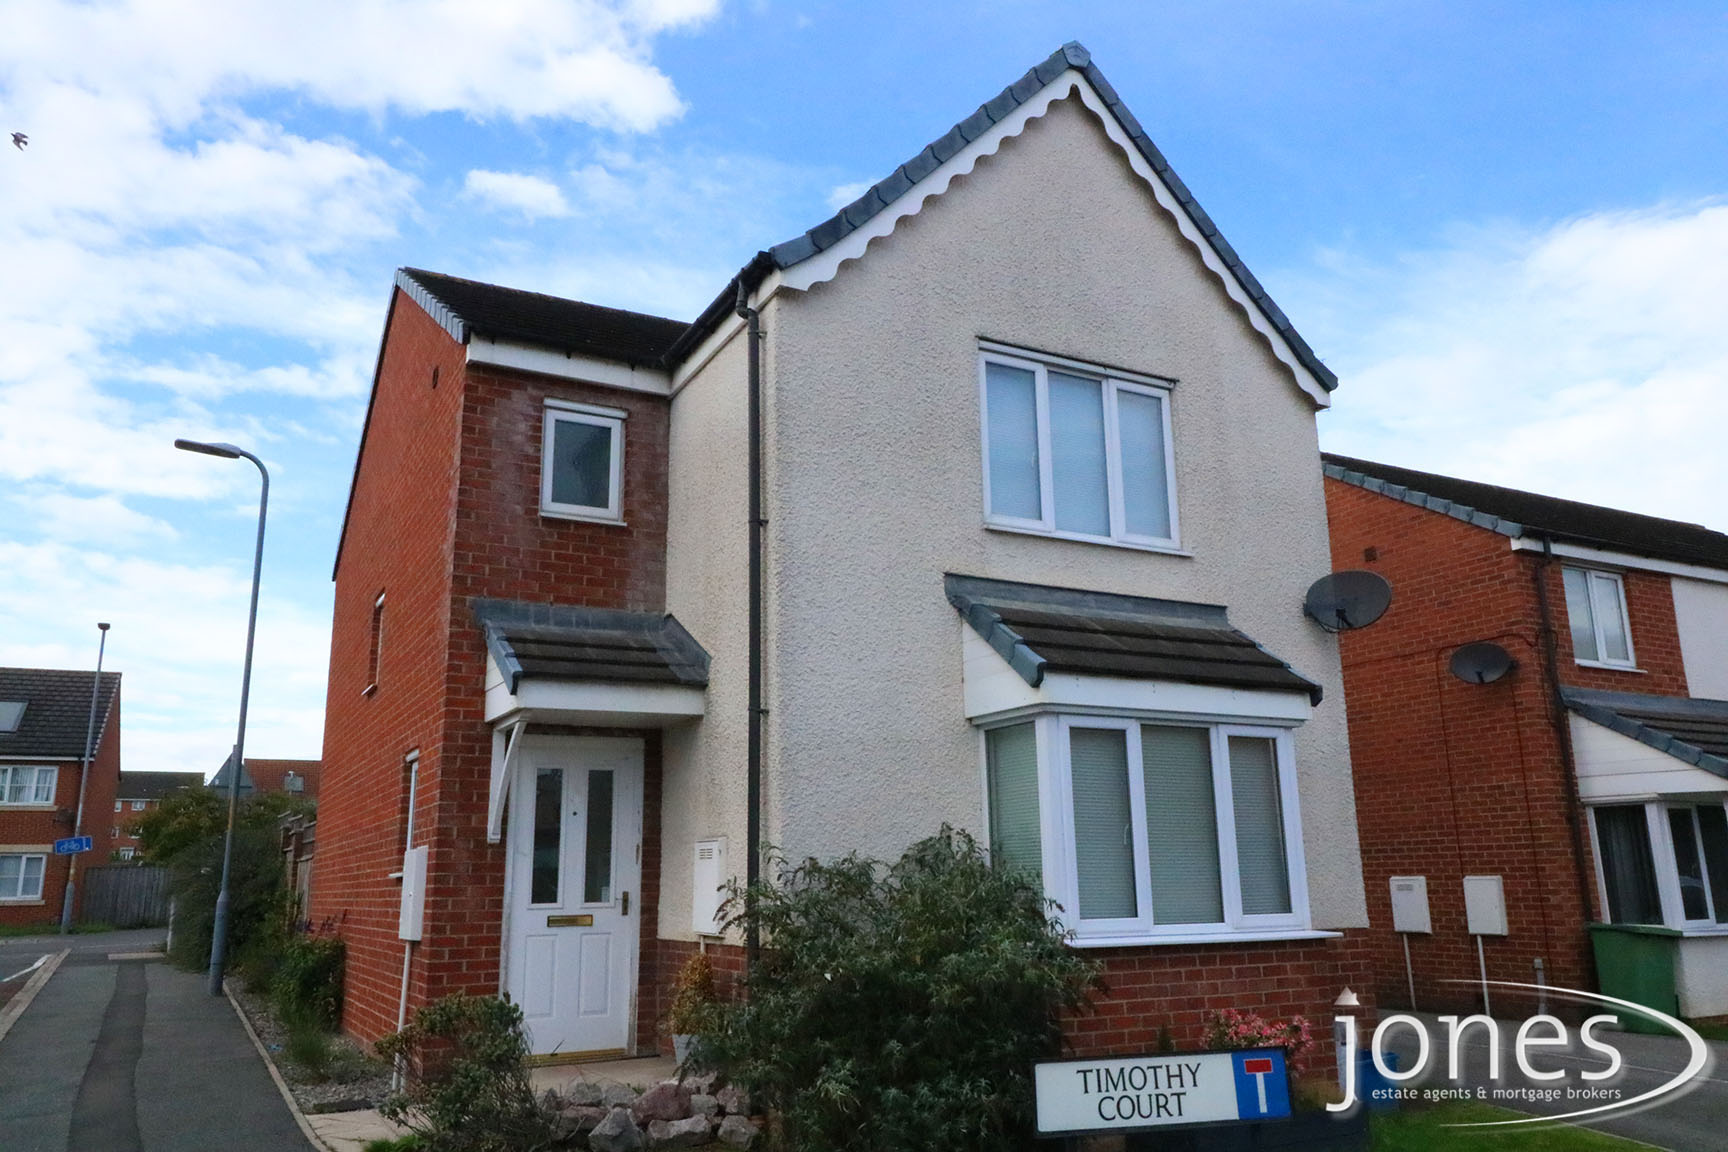 Home for Sale Let - Photo 01 Timothy Court, Stockton on Tees, TS18 3AU